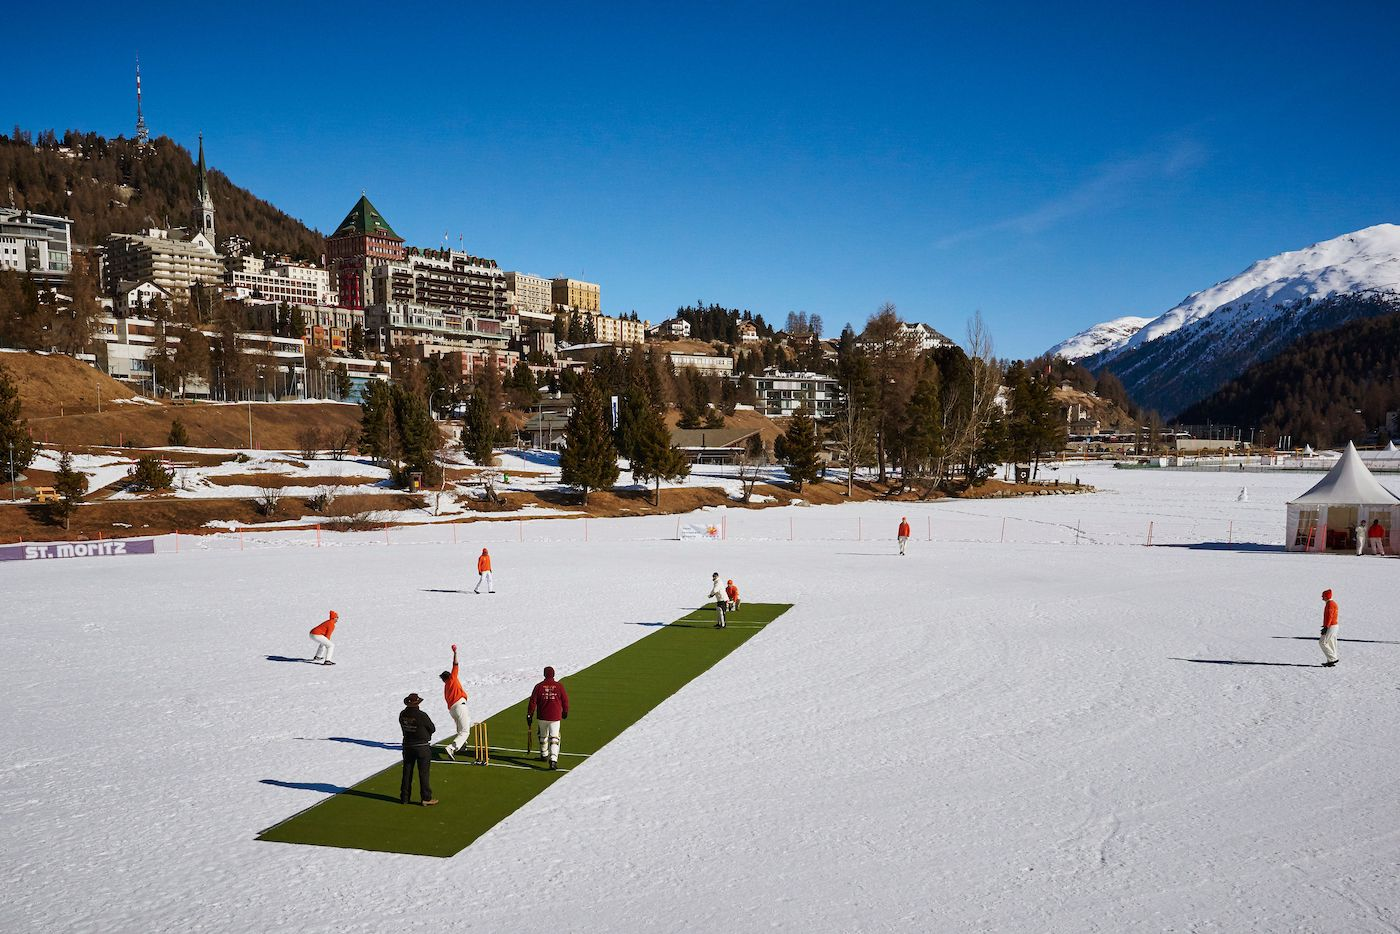 No business like snow business: St Moritz's annual Cricket on Ice tournament has managed to attract a fair few big names in cricket